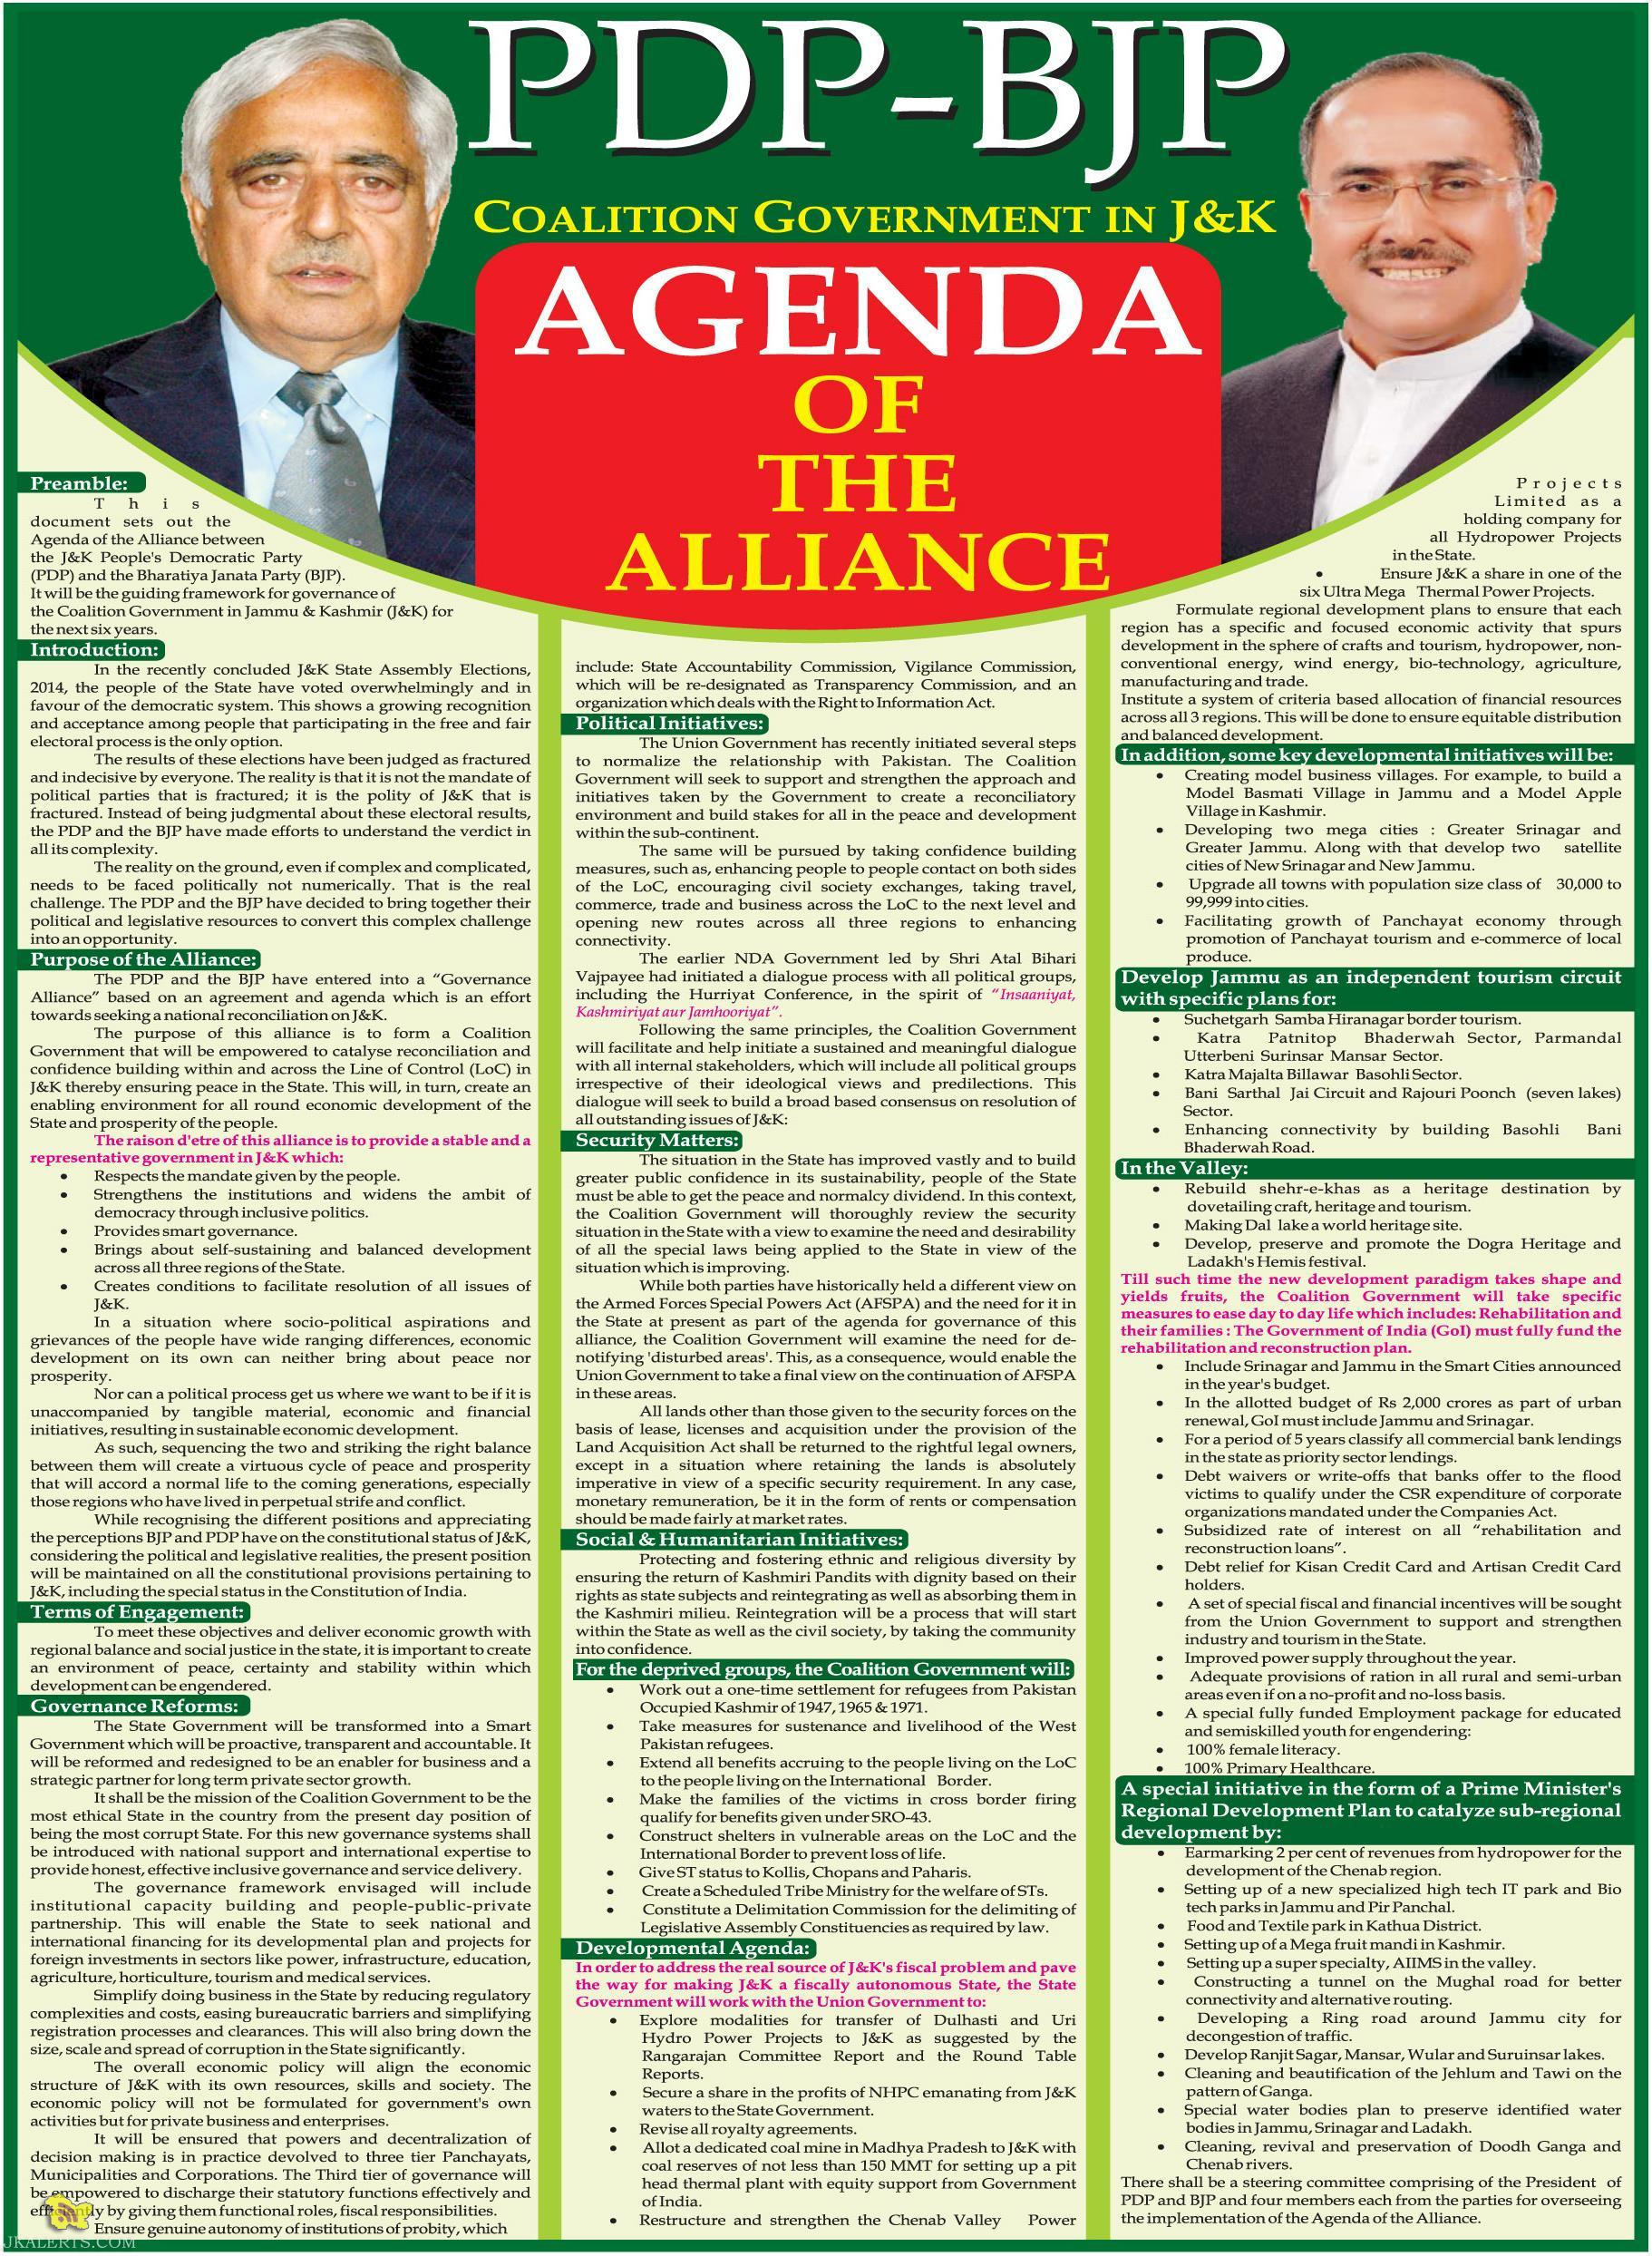 Coalition Government in J&K Agenda of the alliance